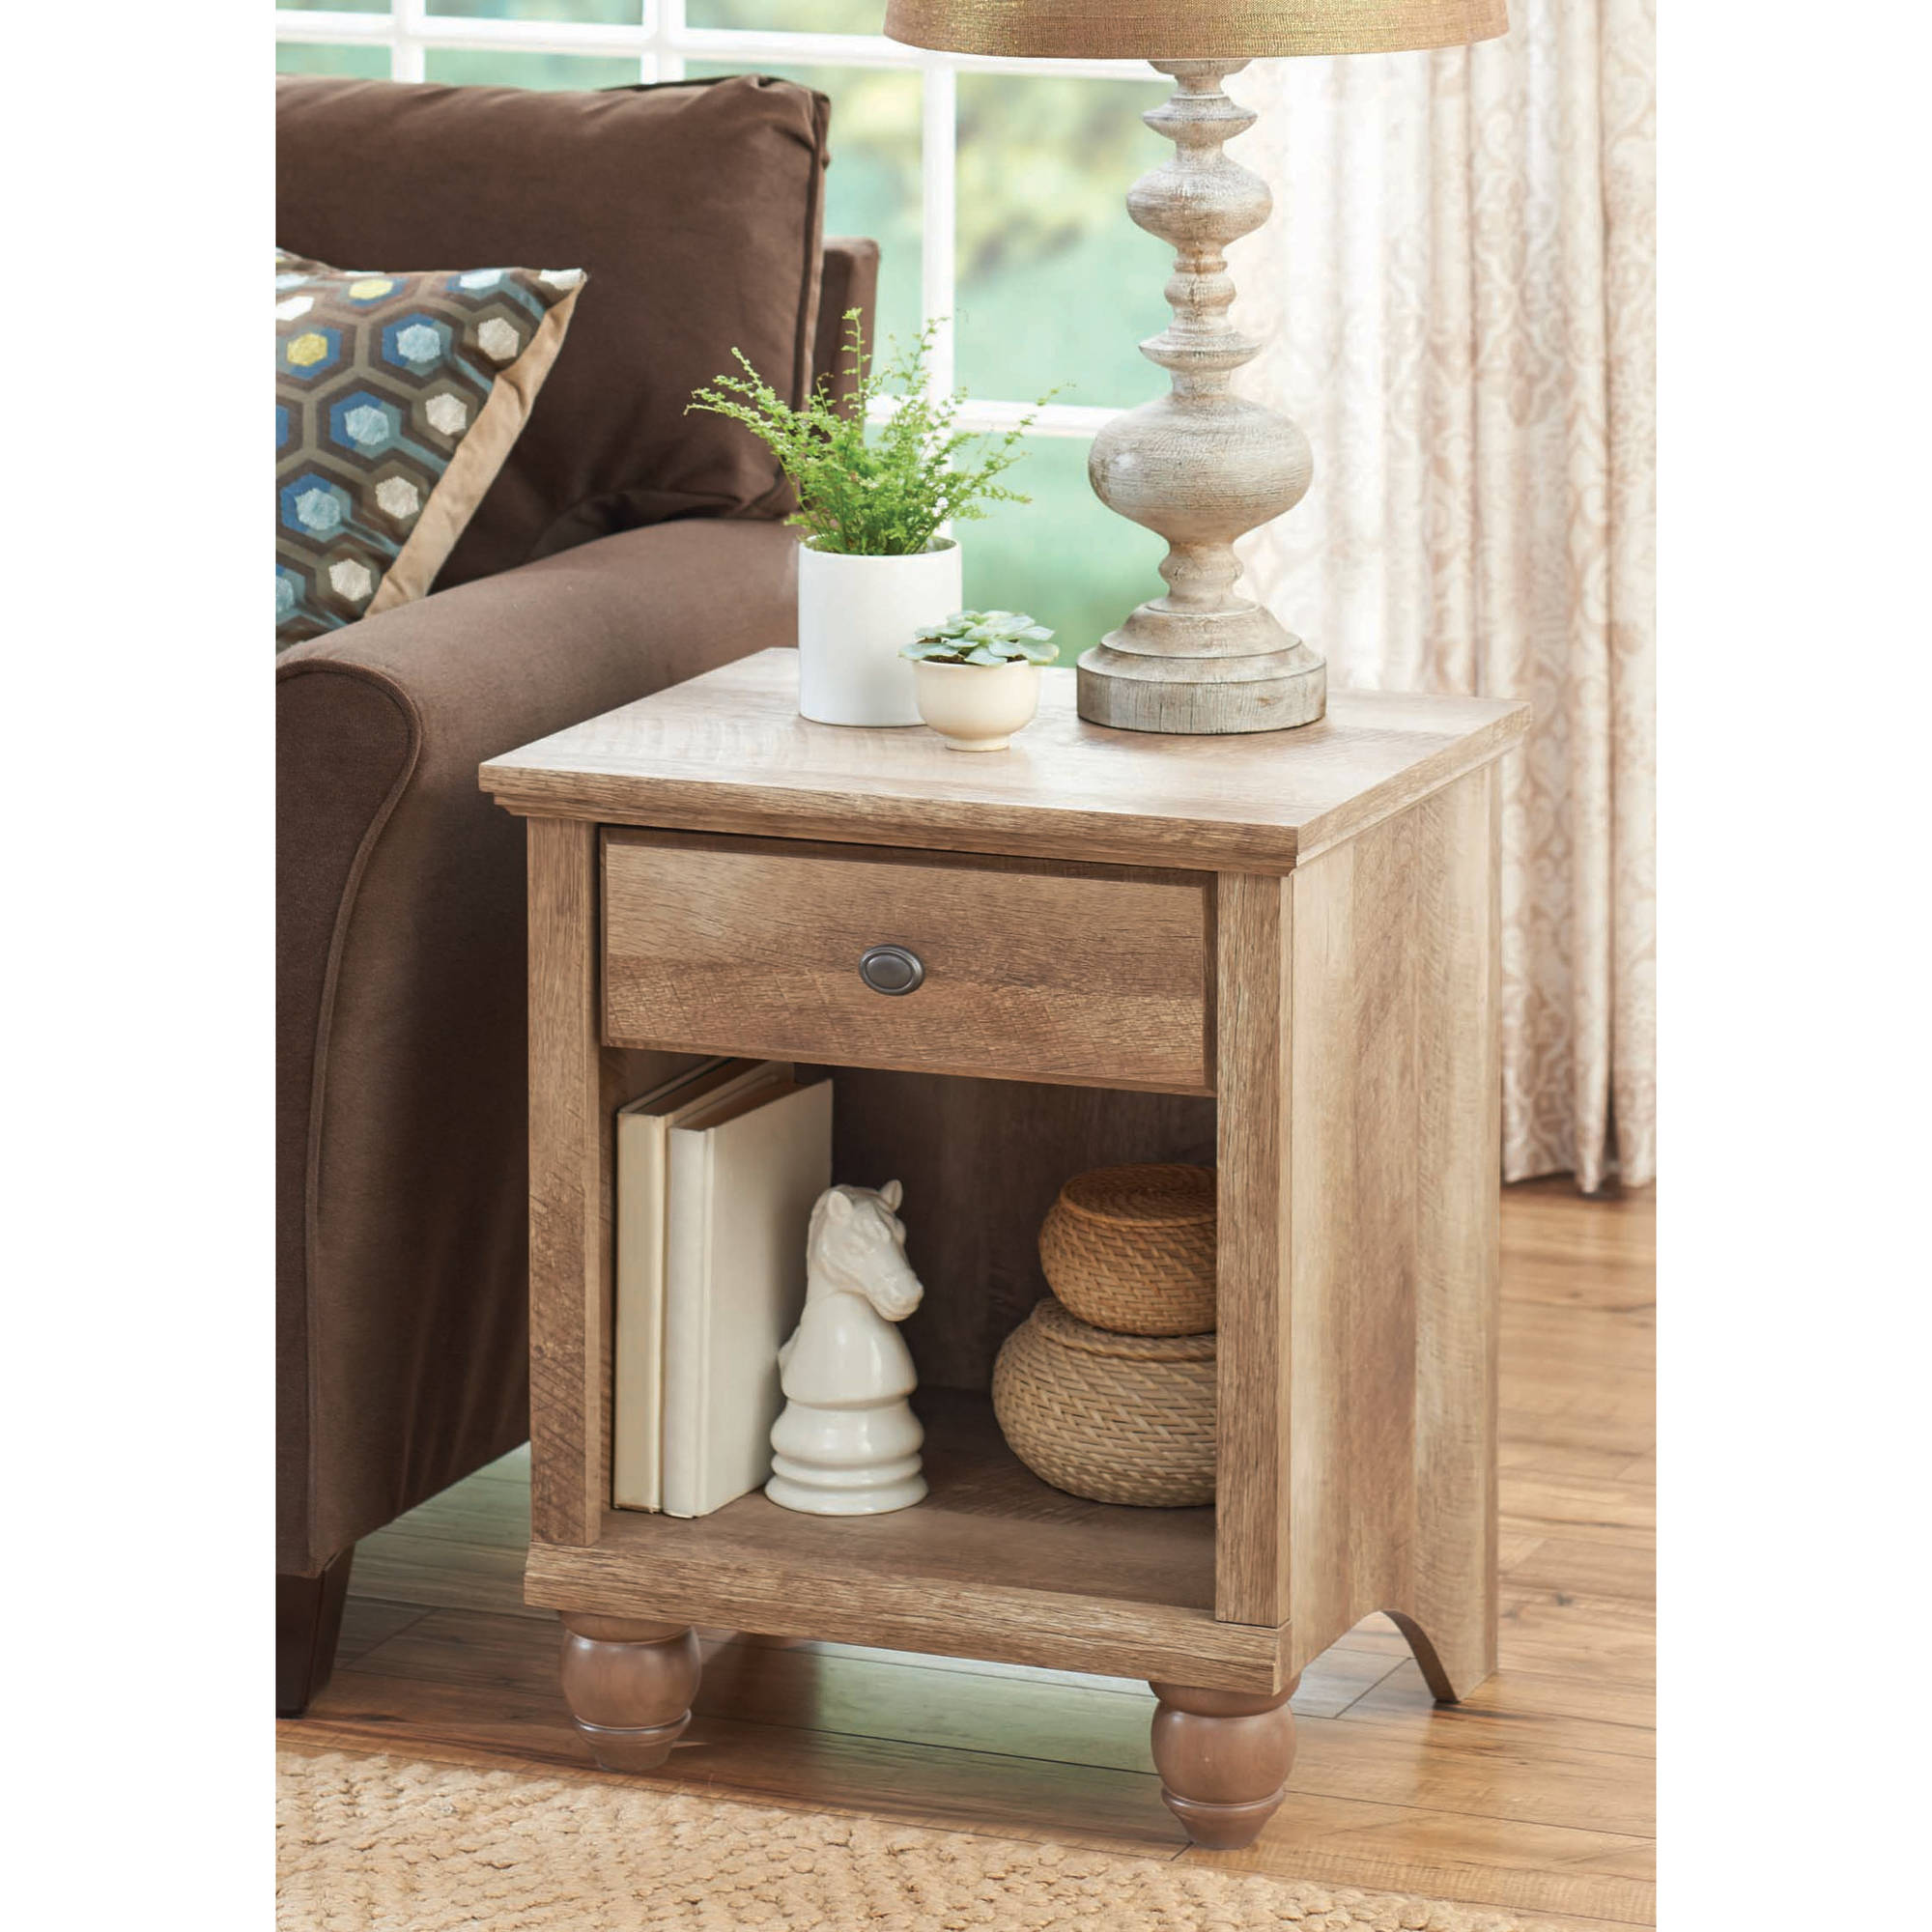 better homes gardens crossmill accent table weathered finish gray snack glass console with drawers antique round wood mat for dining brass side ikea play six chairs sheesham nest